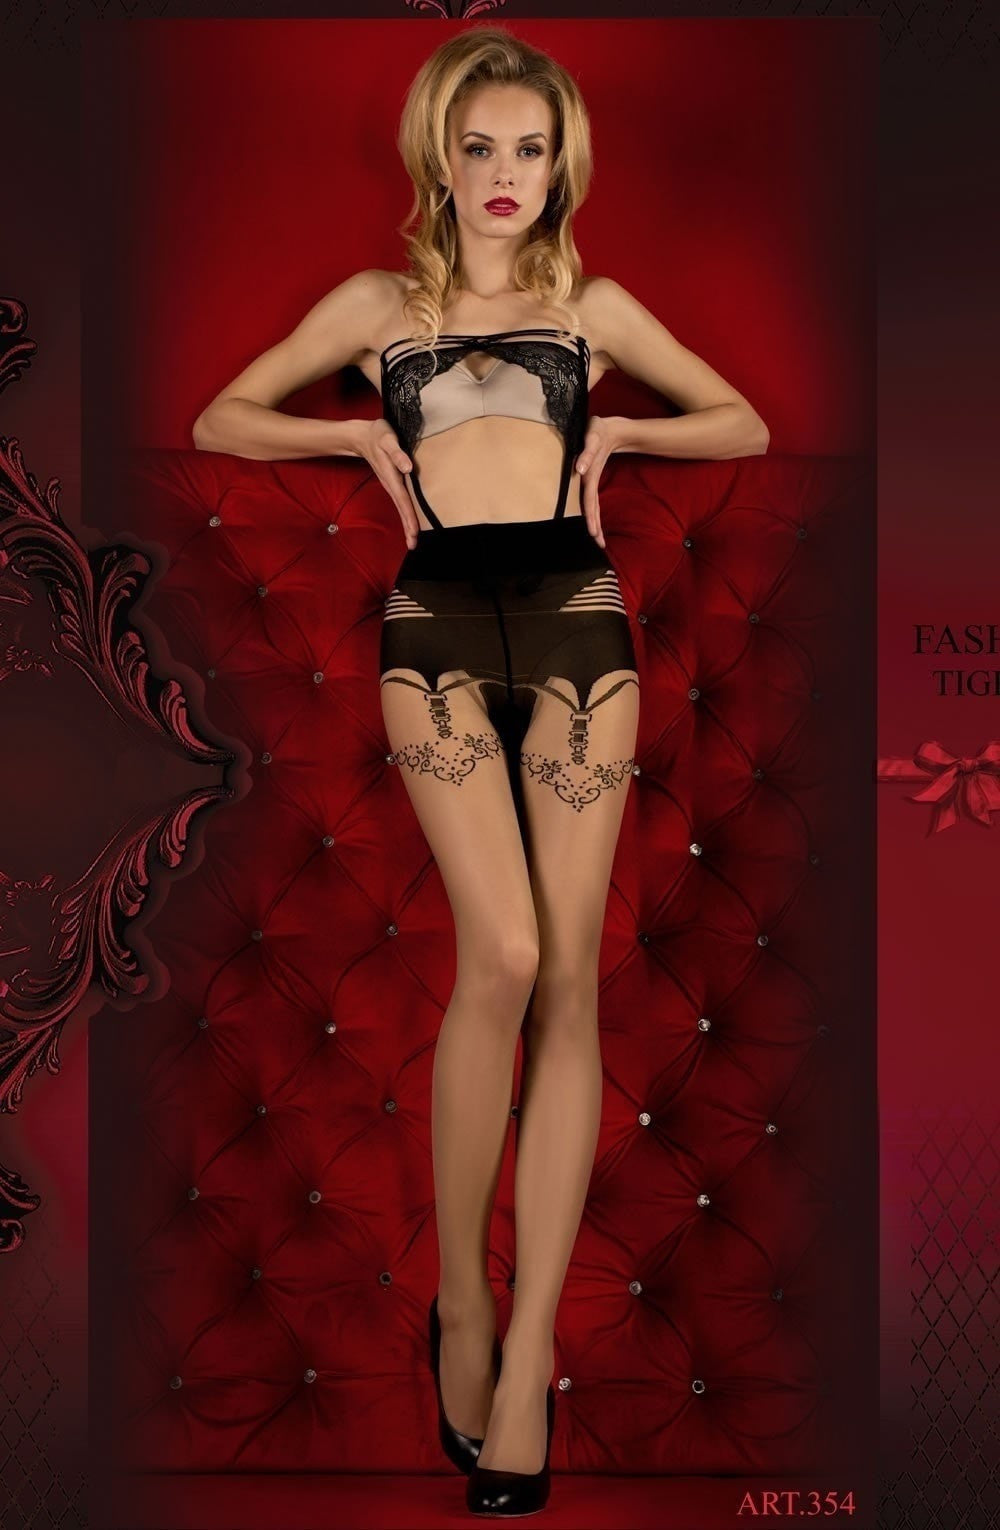 Ballerina Tights 354 (Skin/Black) - Tights - Ballerina - Charm and Lace Boutique